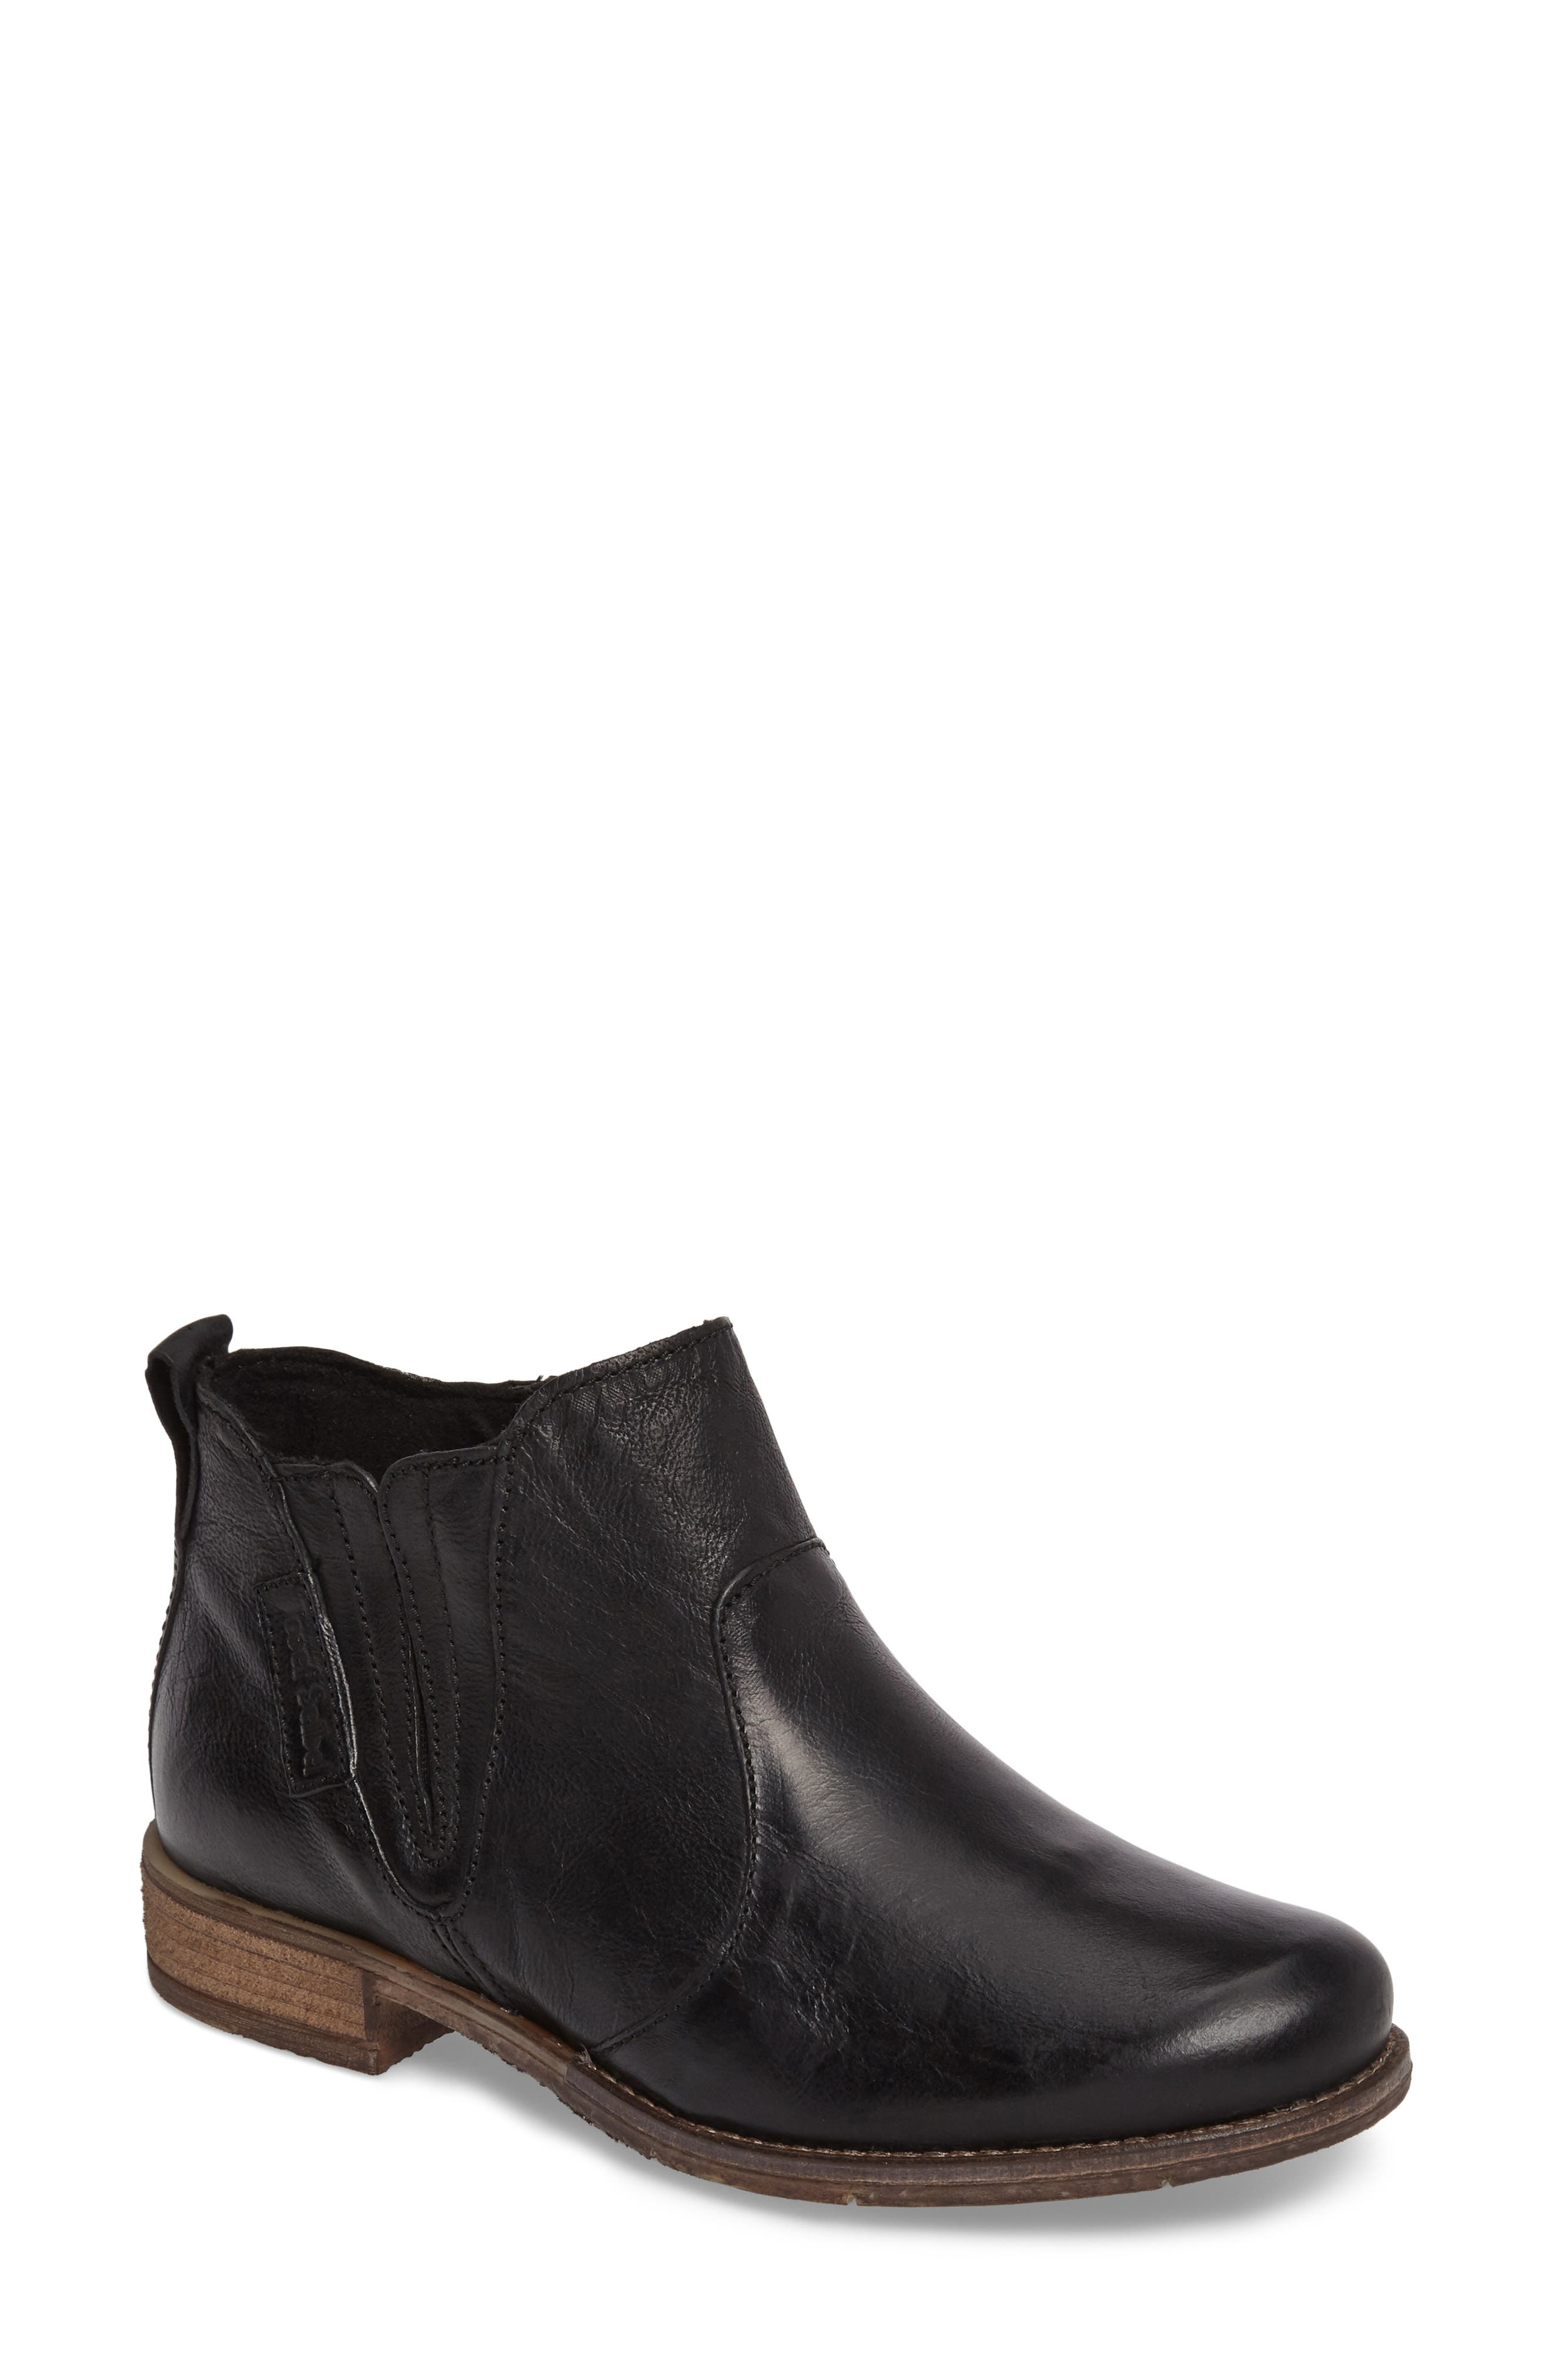 Sienna 45 Chelsea Bootie,                         Main,                         color, BLACK LEATHER